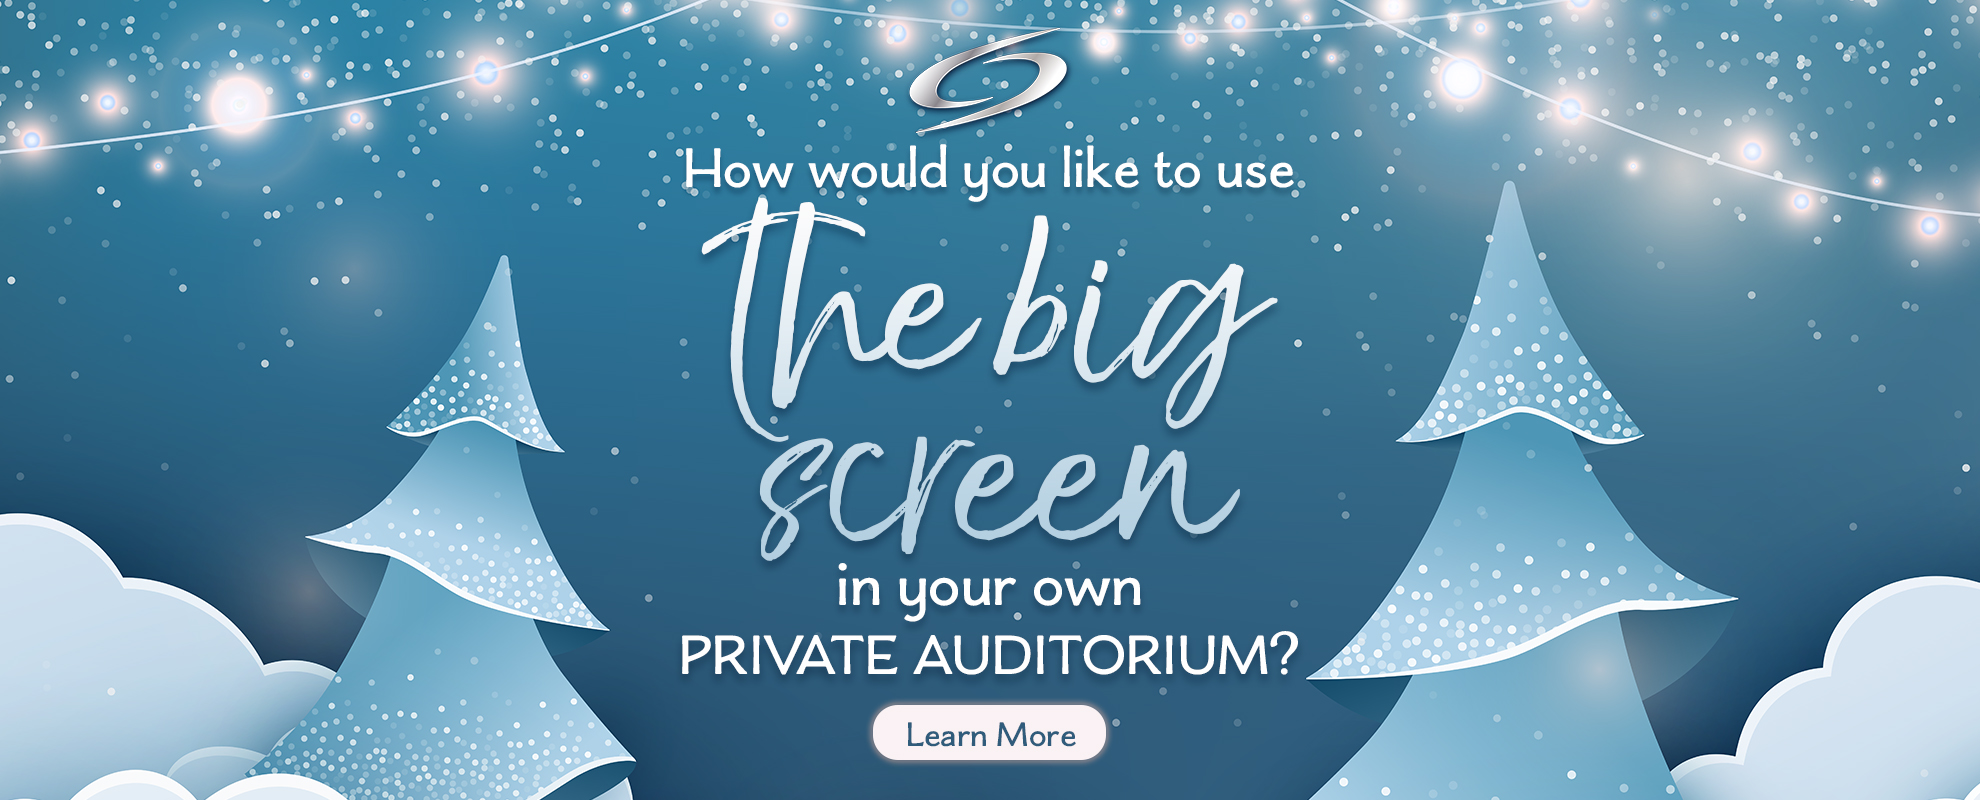 PRIVATE SCREENING - Winter Wonderland image